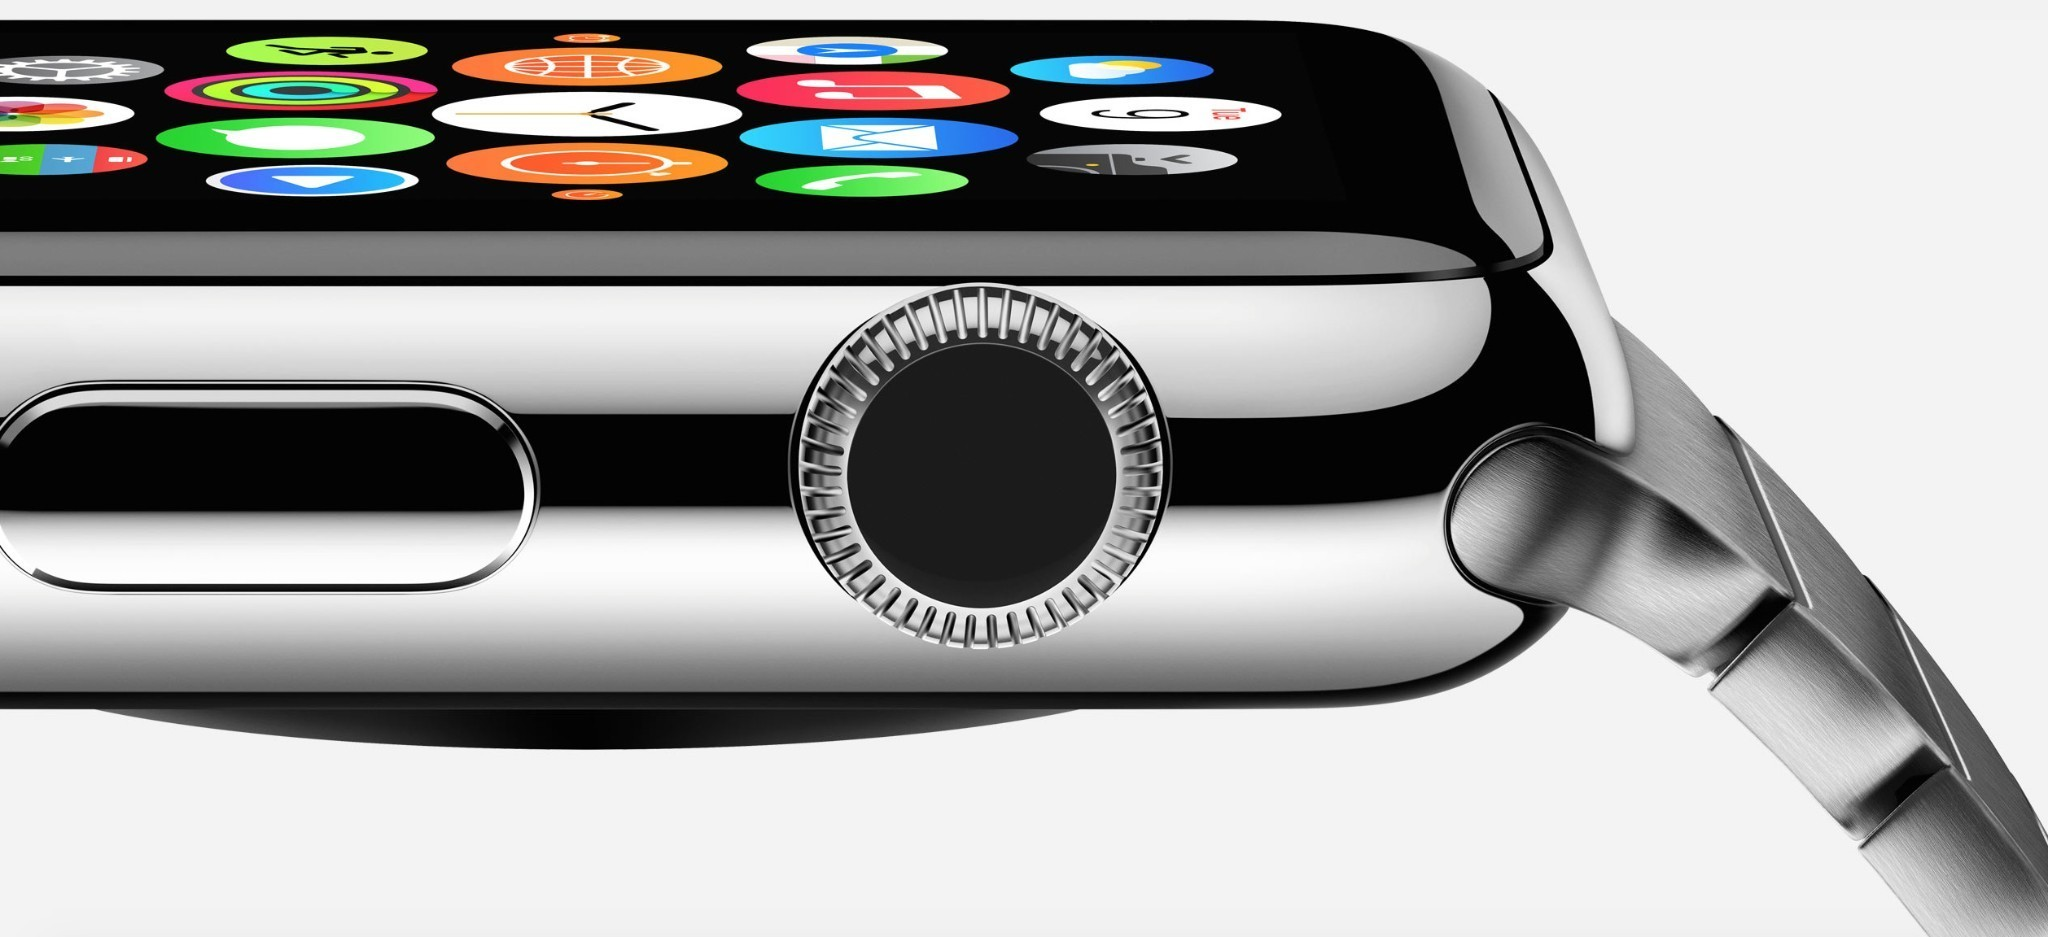 Apple Watch launch expected in March, retail training set for mid-February